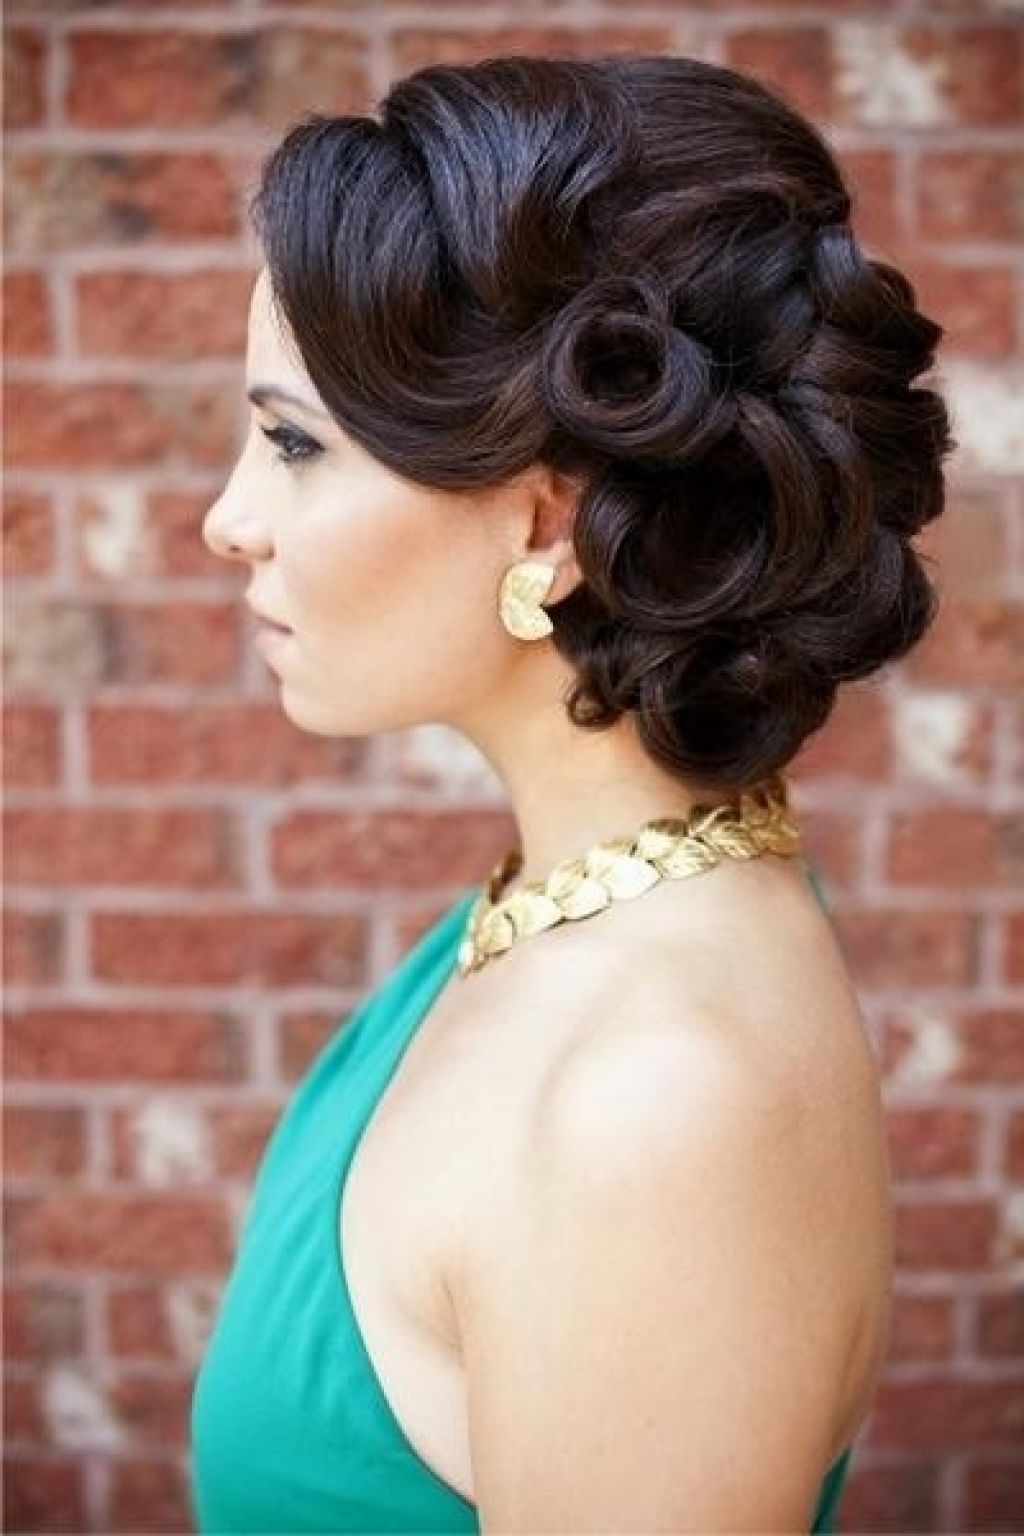 gorgeous wedding hairstyle ideas for your big day wedding